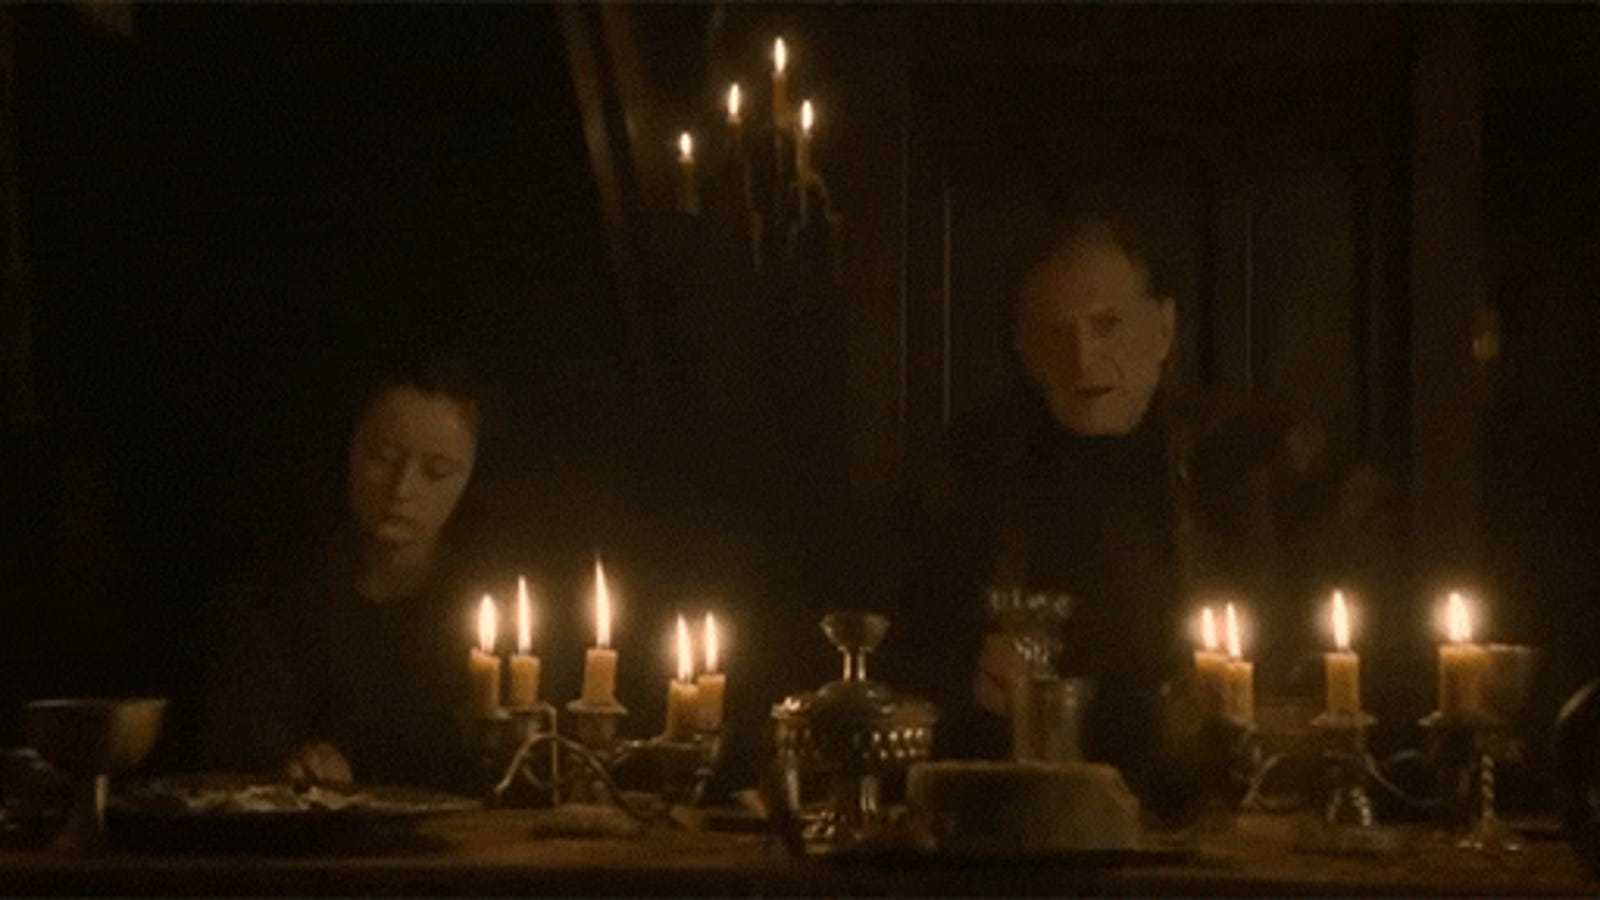 Game Of Thrones Red Wedding.These Terrible Historical Events Inspired Game Of Thrones Red Wedding